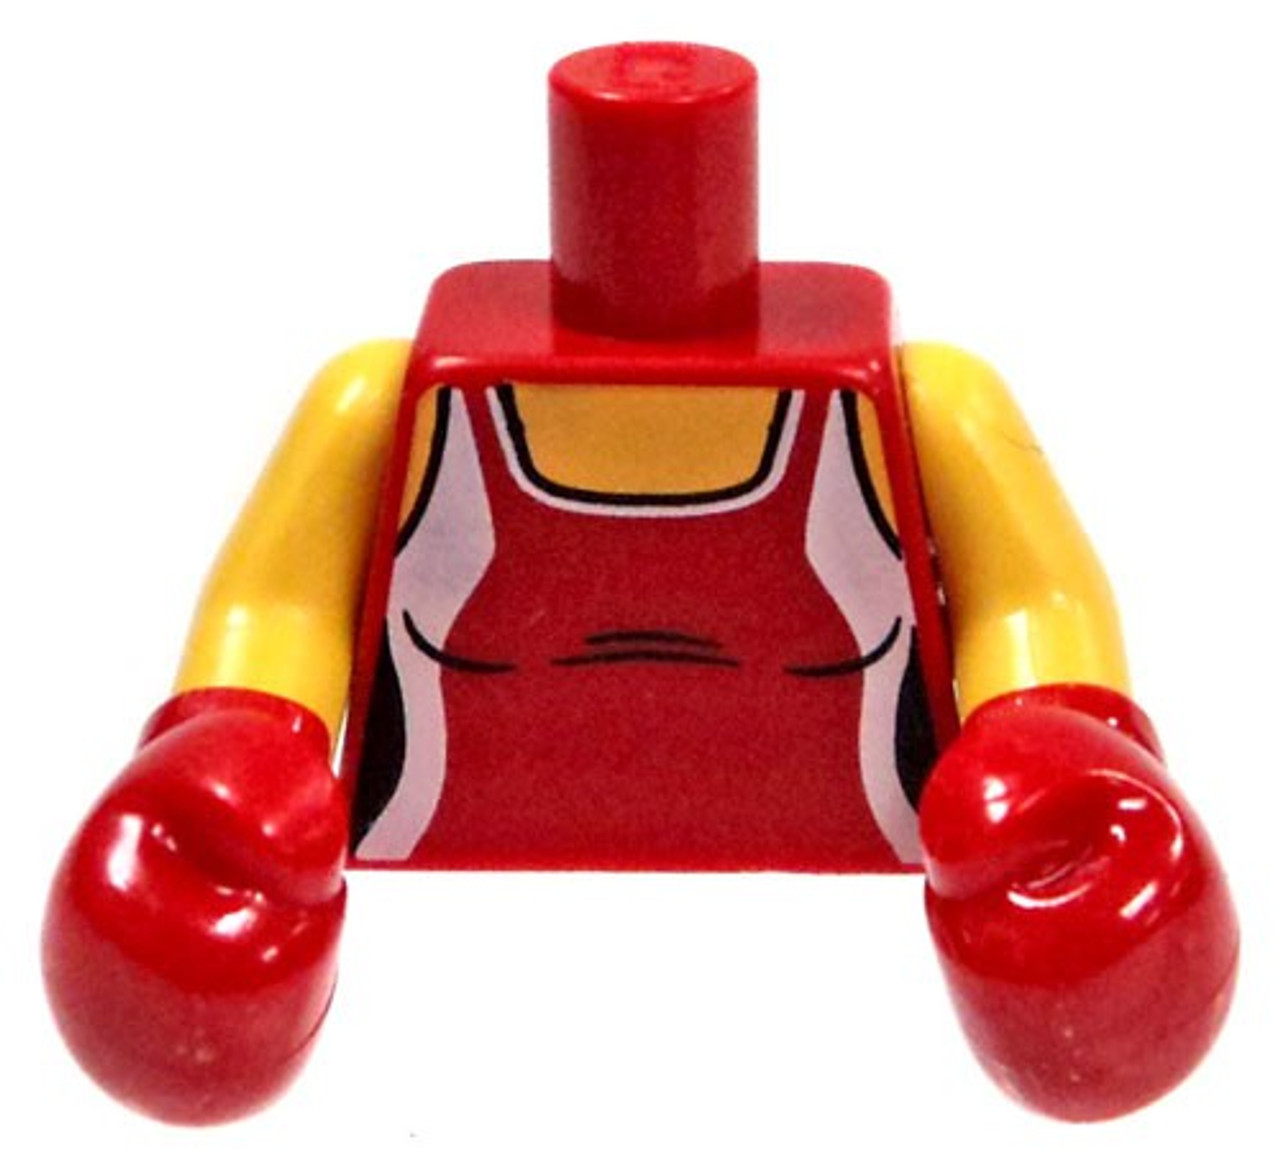 LEGO Minifigure Parts Red Tank Top with Boxing Gloves Loose Torso ...